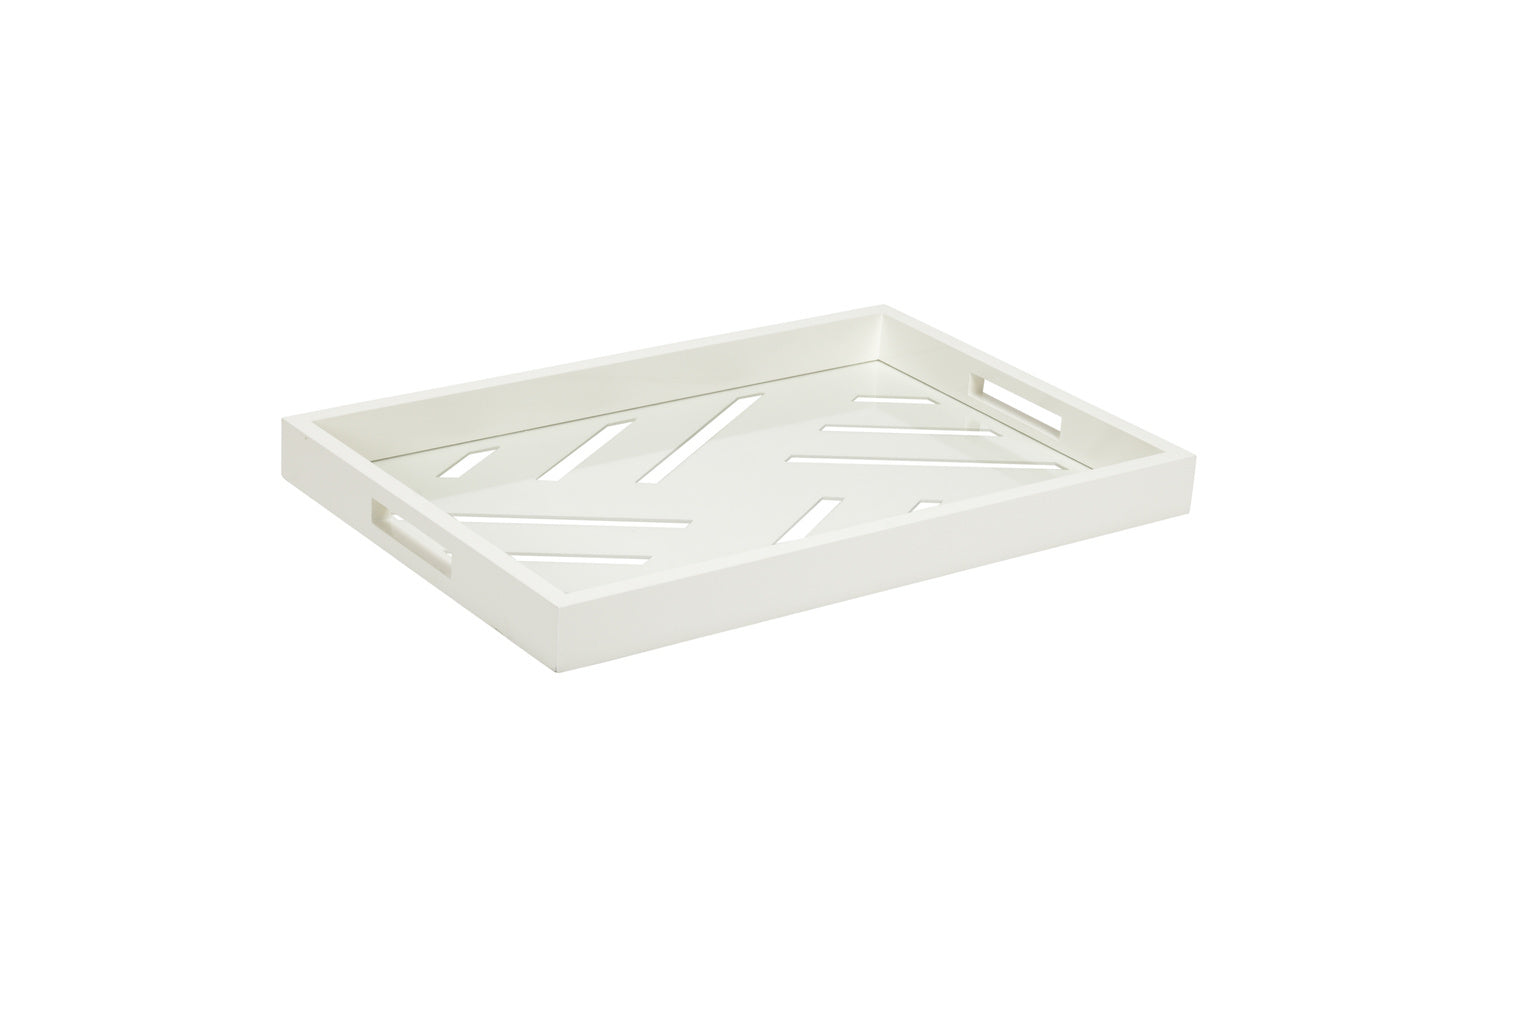 Chelsea House Tidewater Tray-White 383247